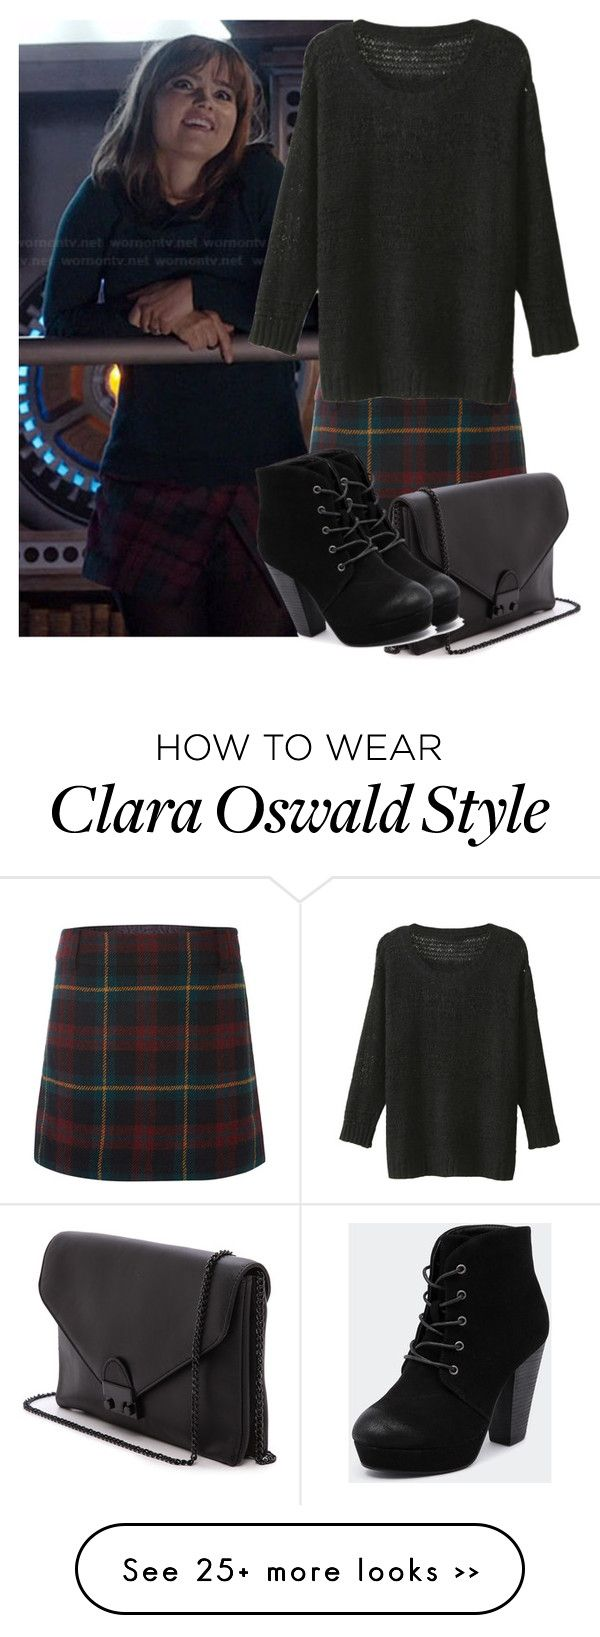 """clara oswald"" by darrenisapuppy on Polyvore"